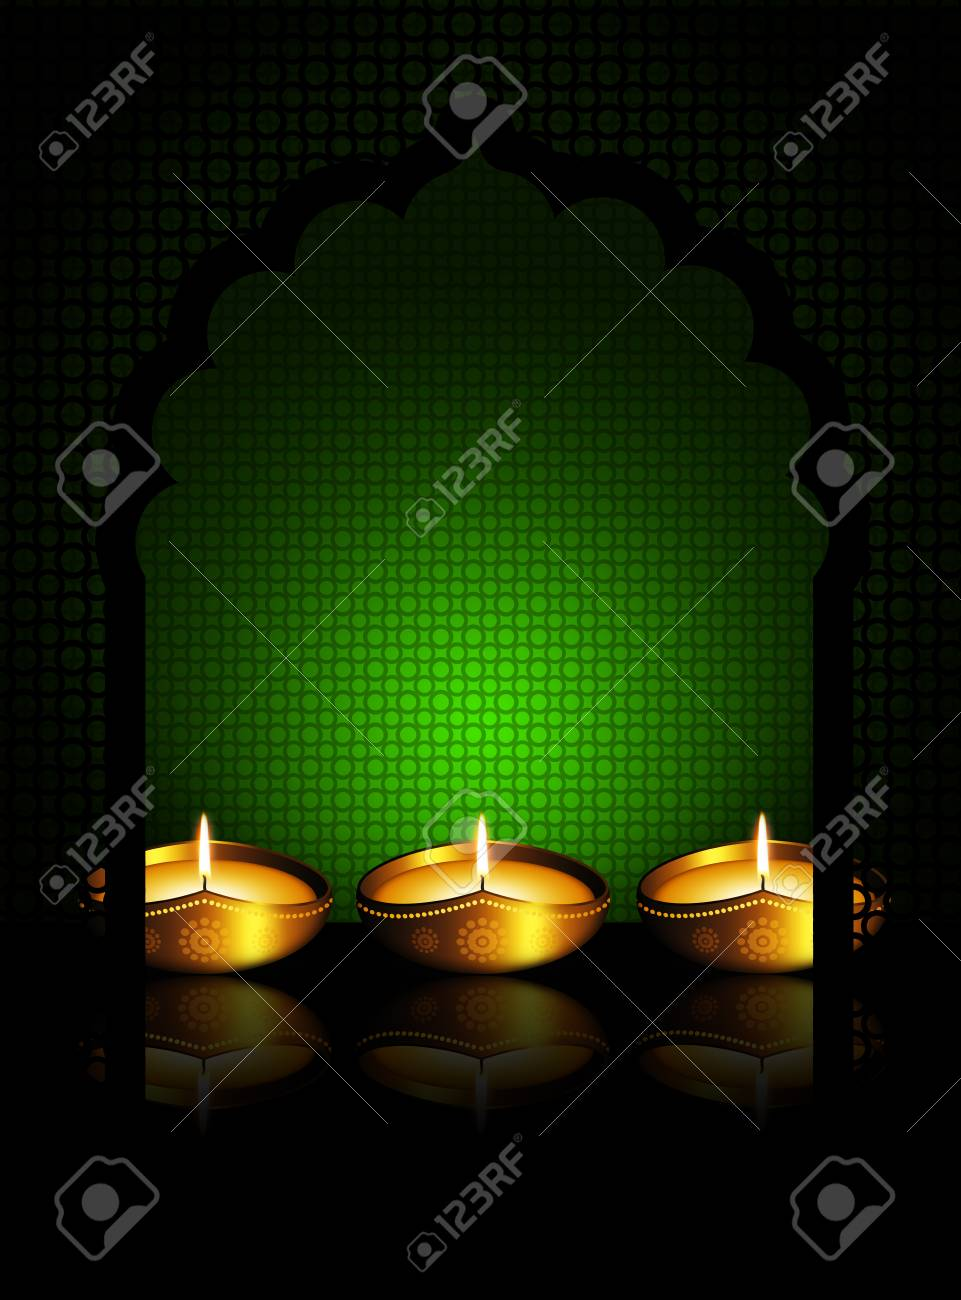 Oil Lamp With Place For Diwali Diya Greetings Over Dark Green Stock